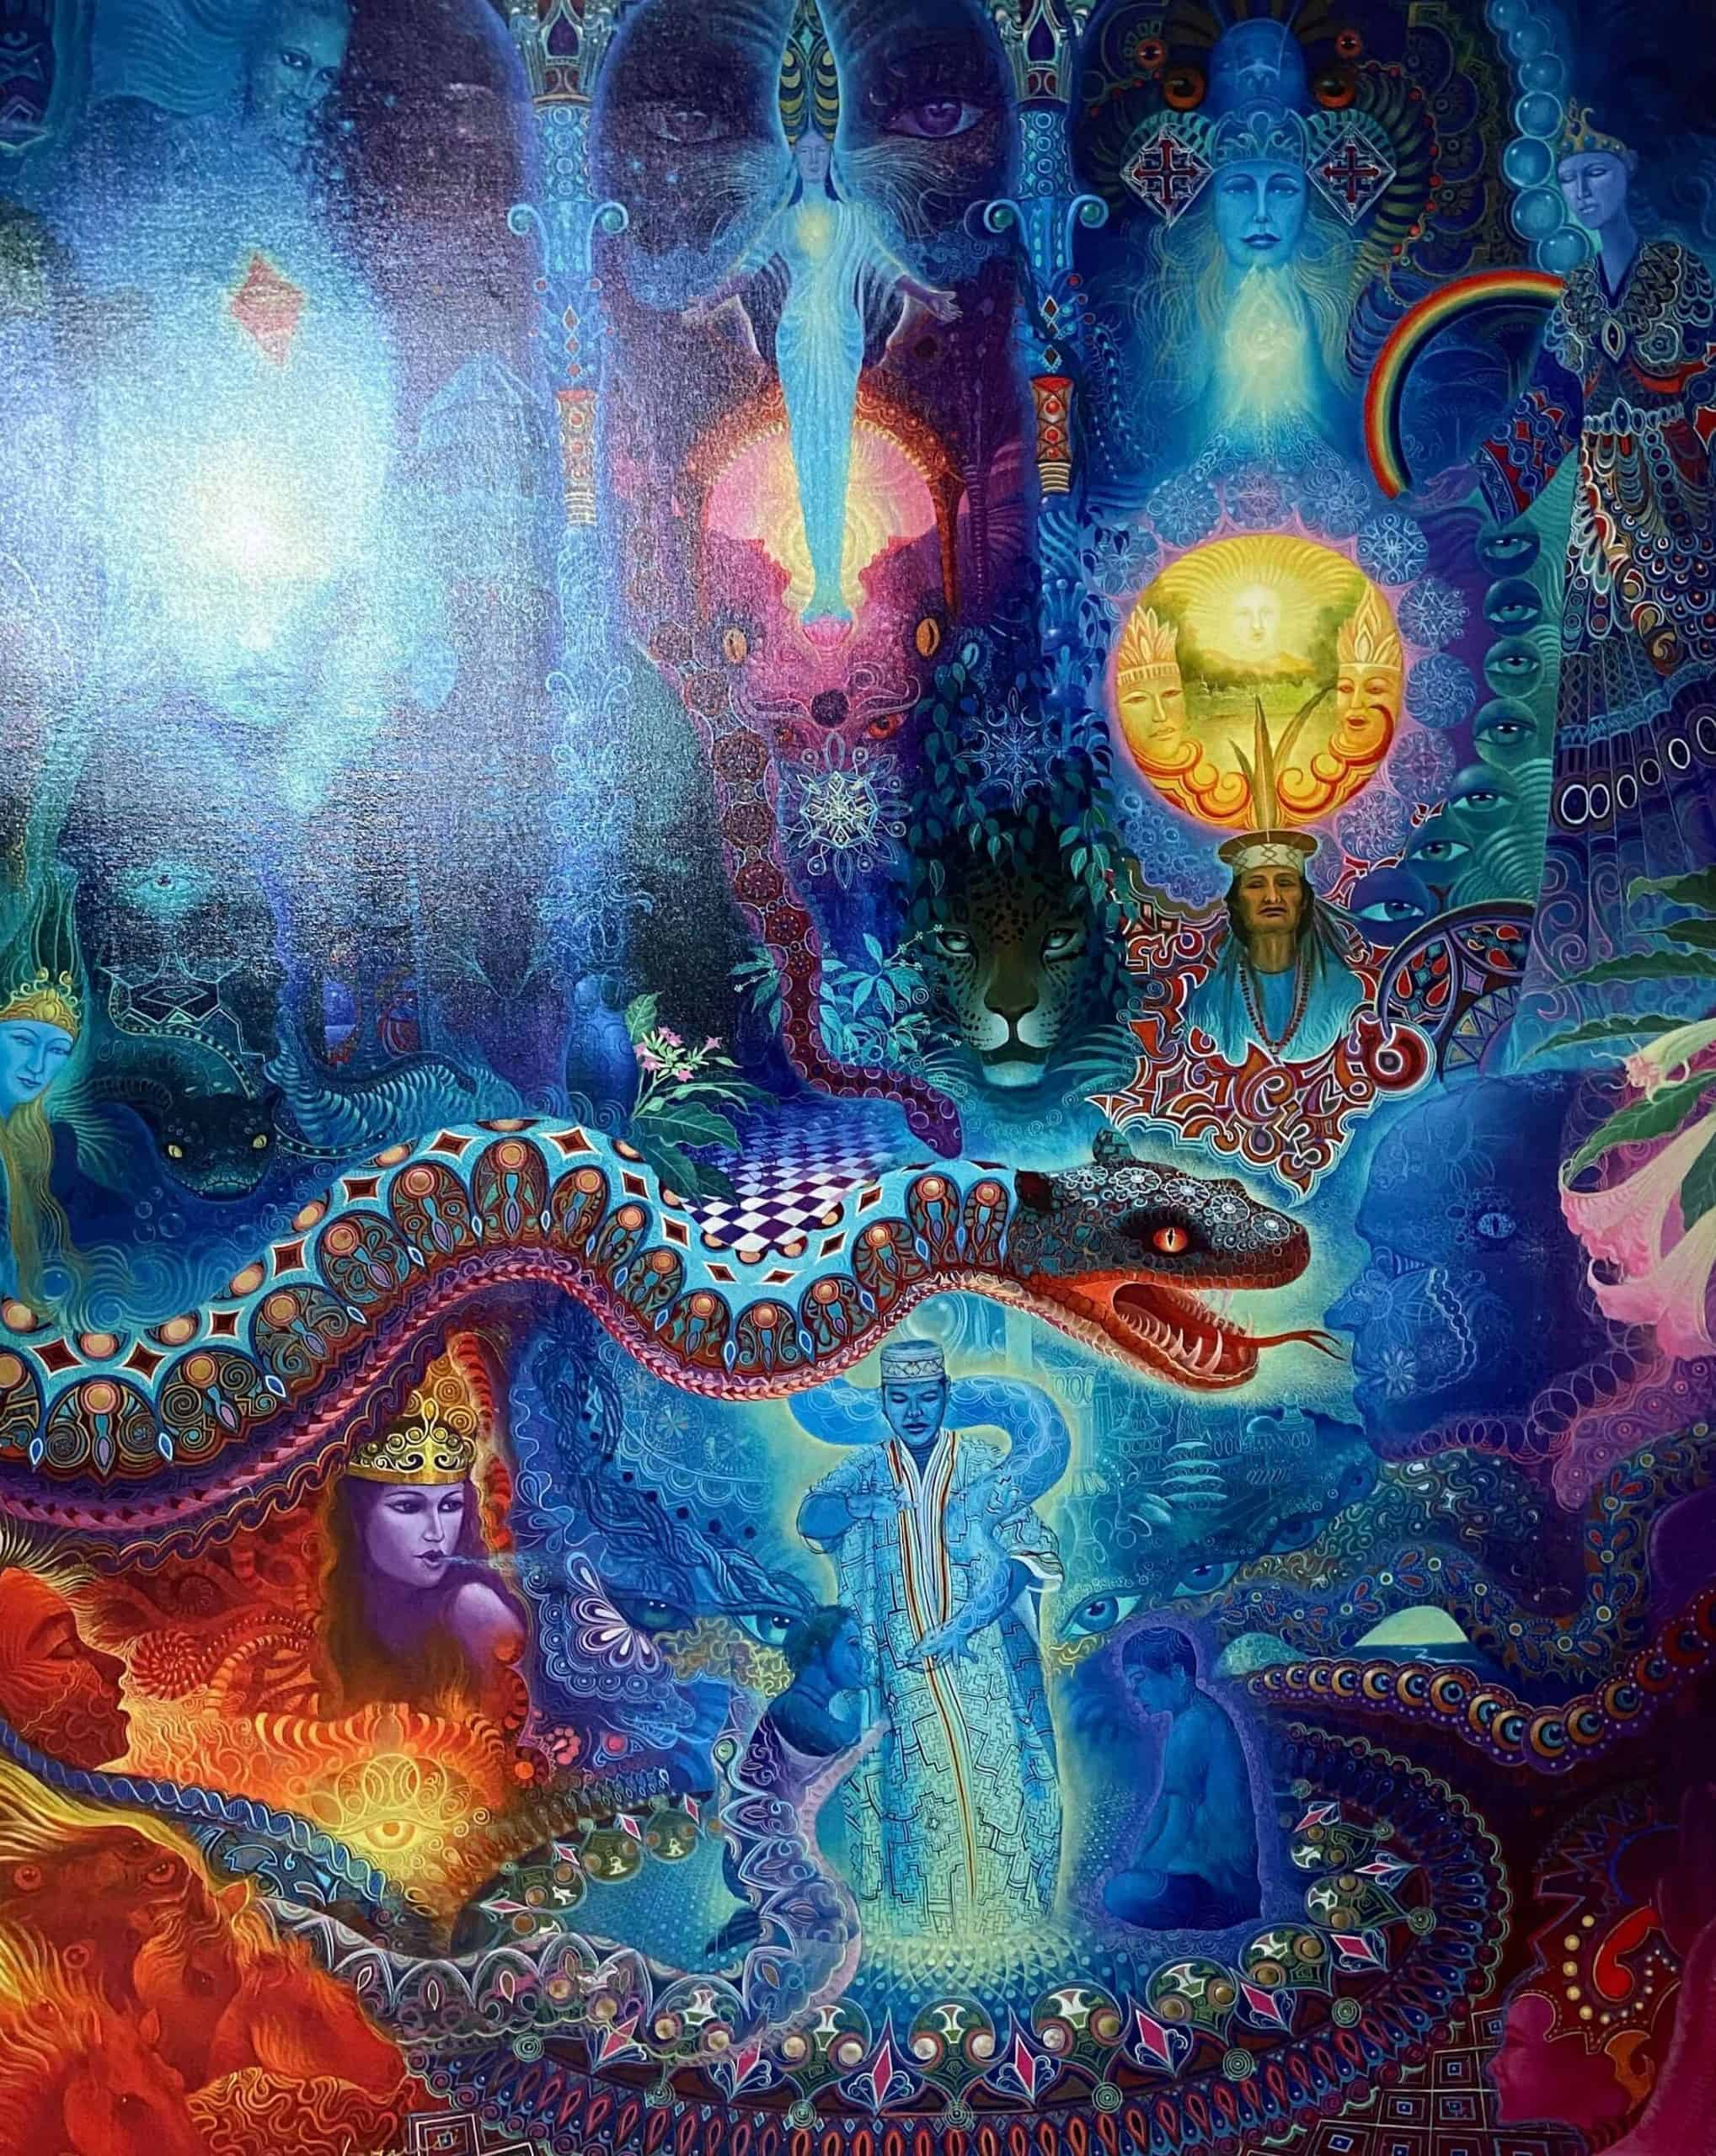 Magic Serpent by Anderson Debernardi https://shamanic-dream.com/anderson-debernardi/